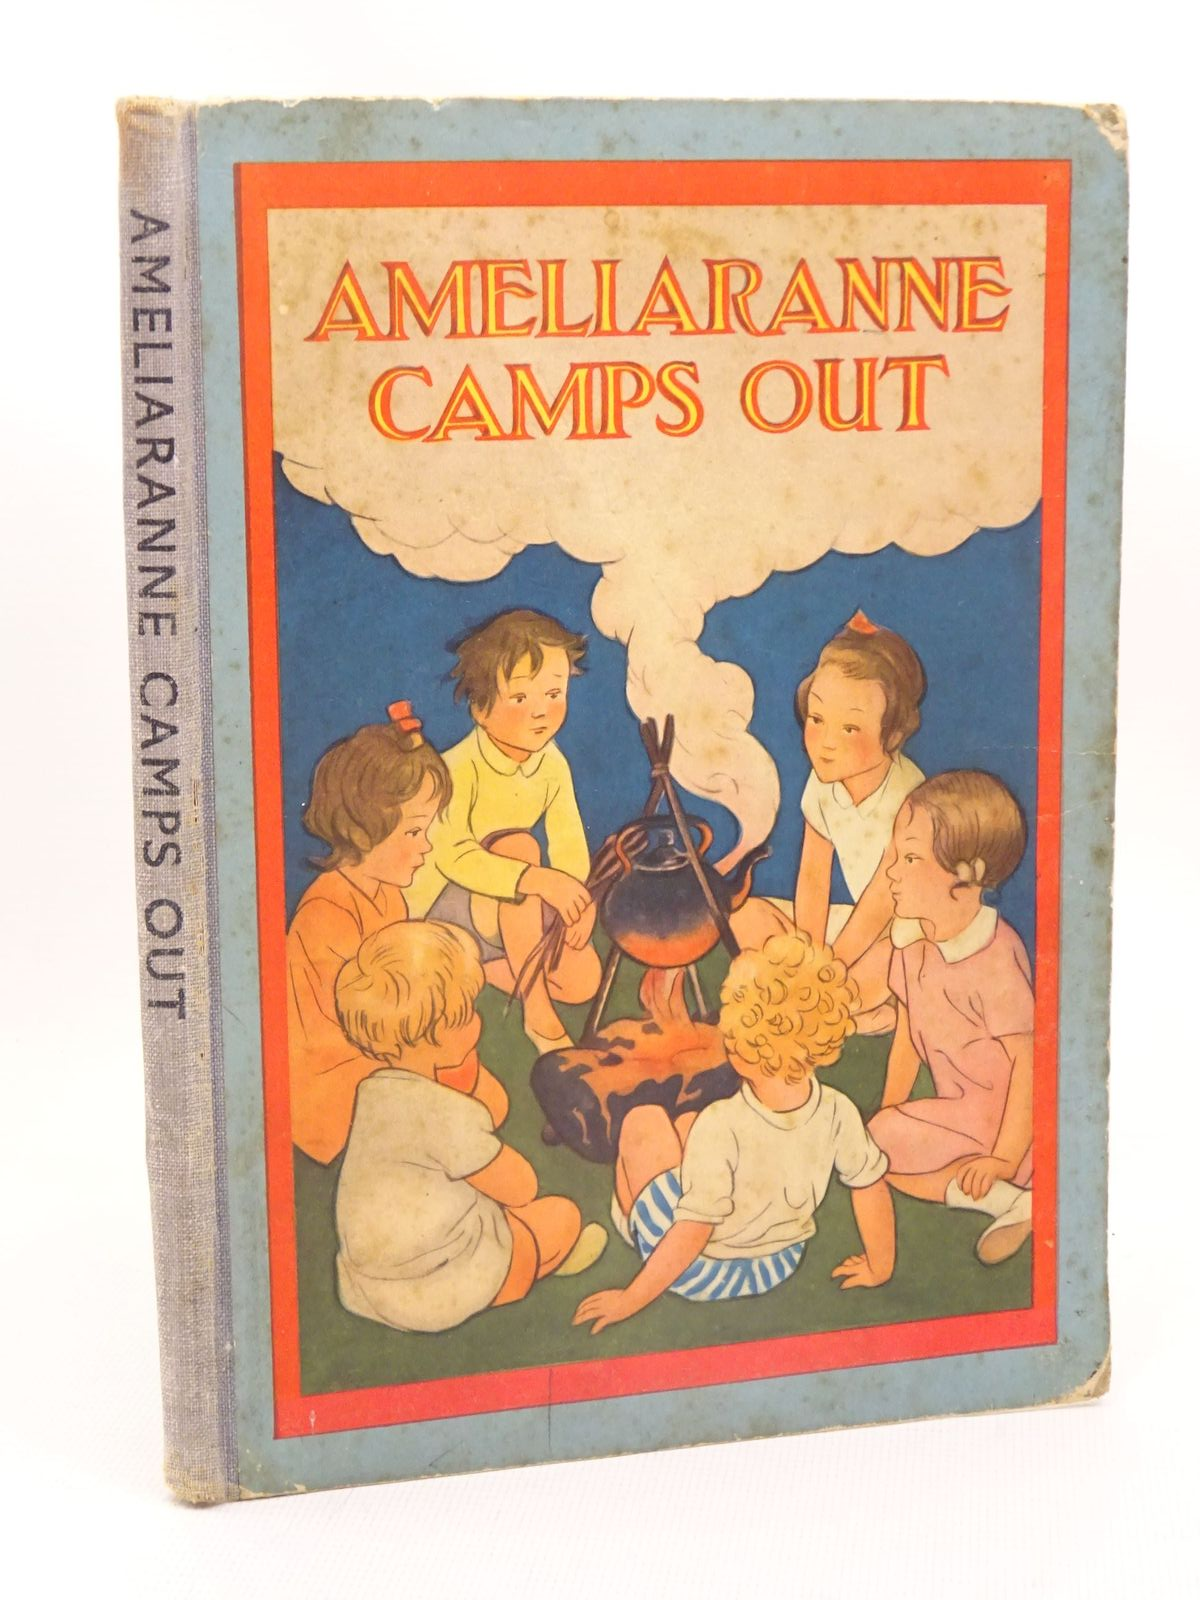 Photo of AMELIARANNE CAMPS OUT written by Heward, Constance illustrated by Pearse, S.B. published by George G. Harrap & Co. Ltd. (STOCK CODE: 1317438)  for sale by Stella & Rose's Books